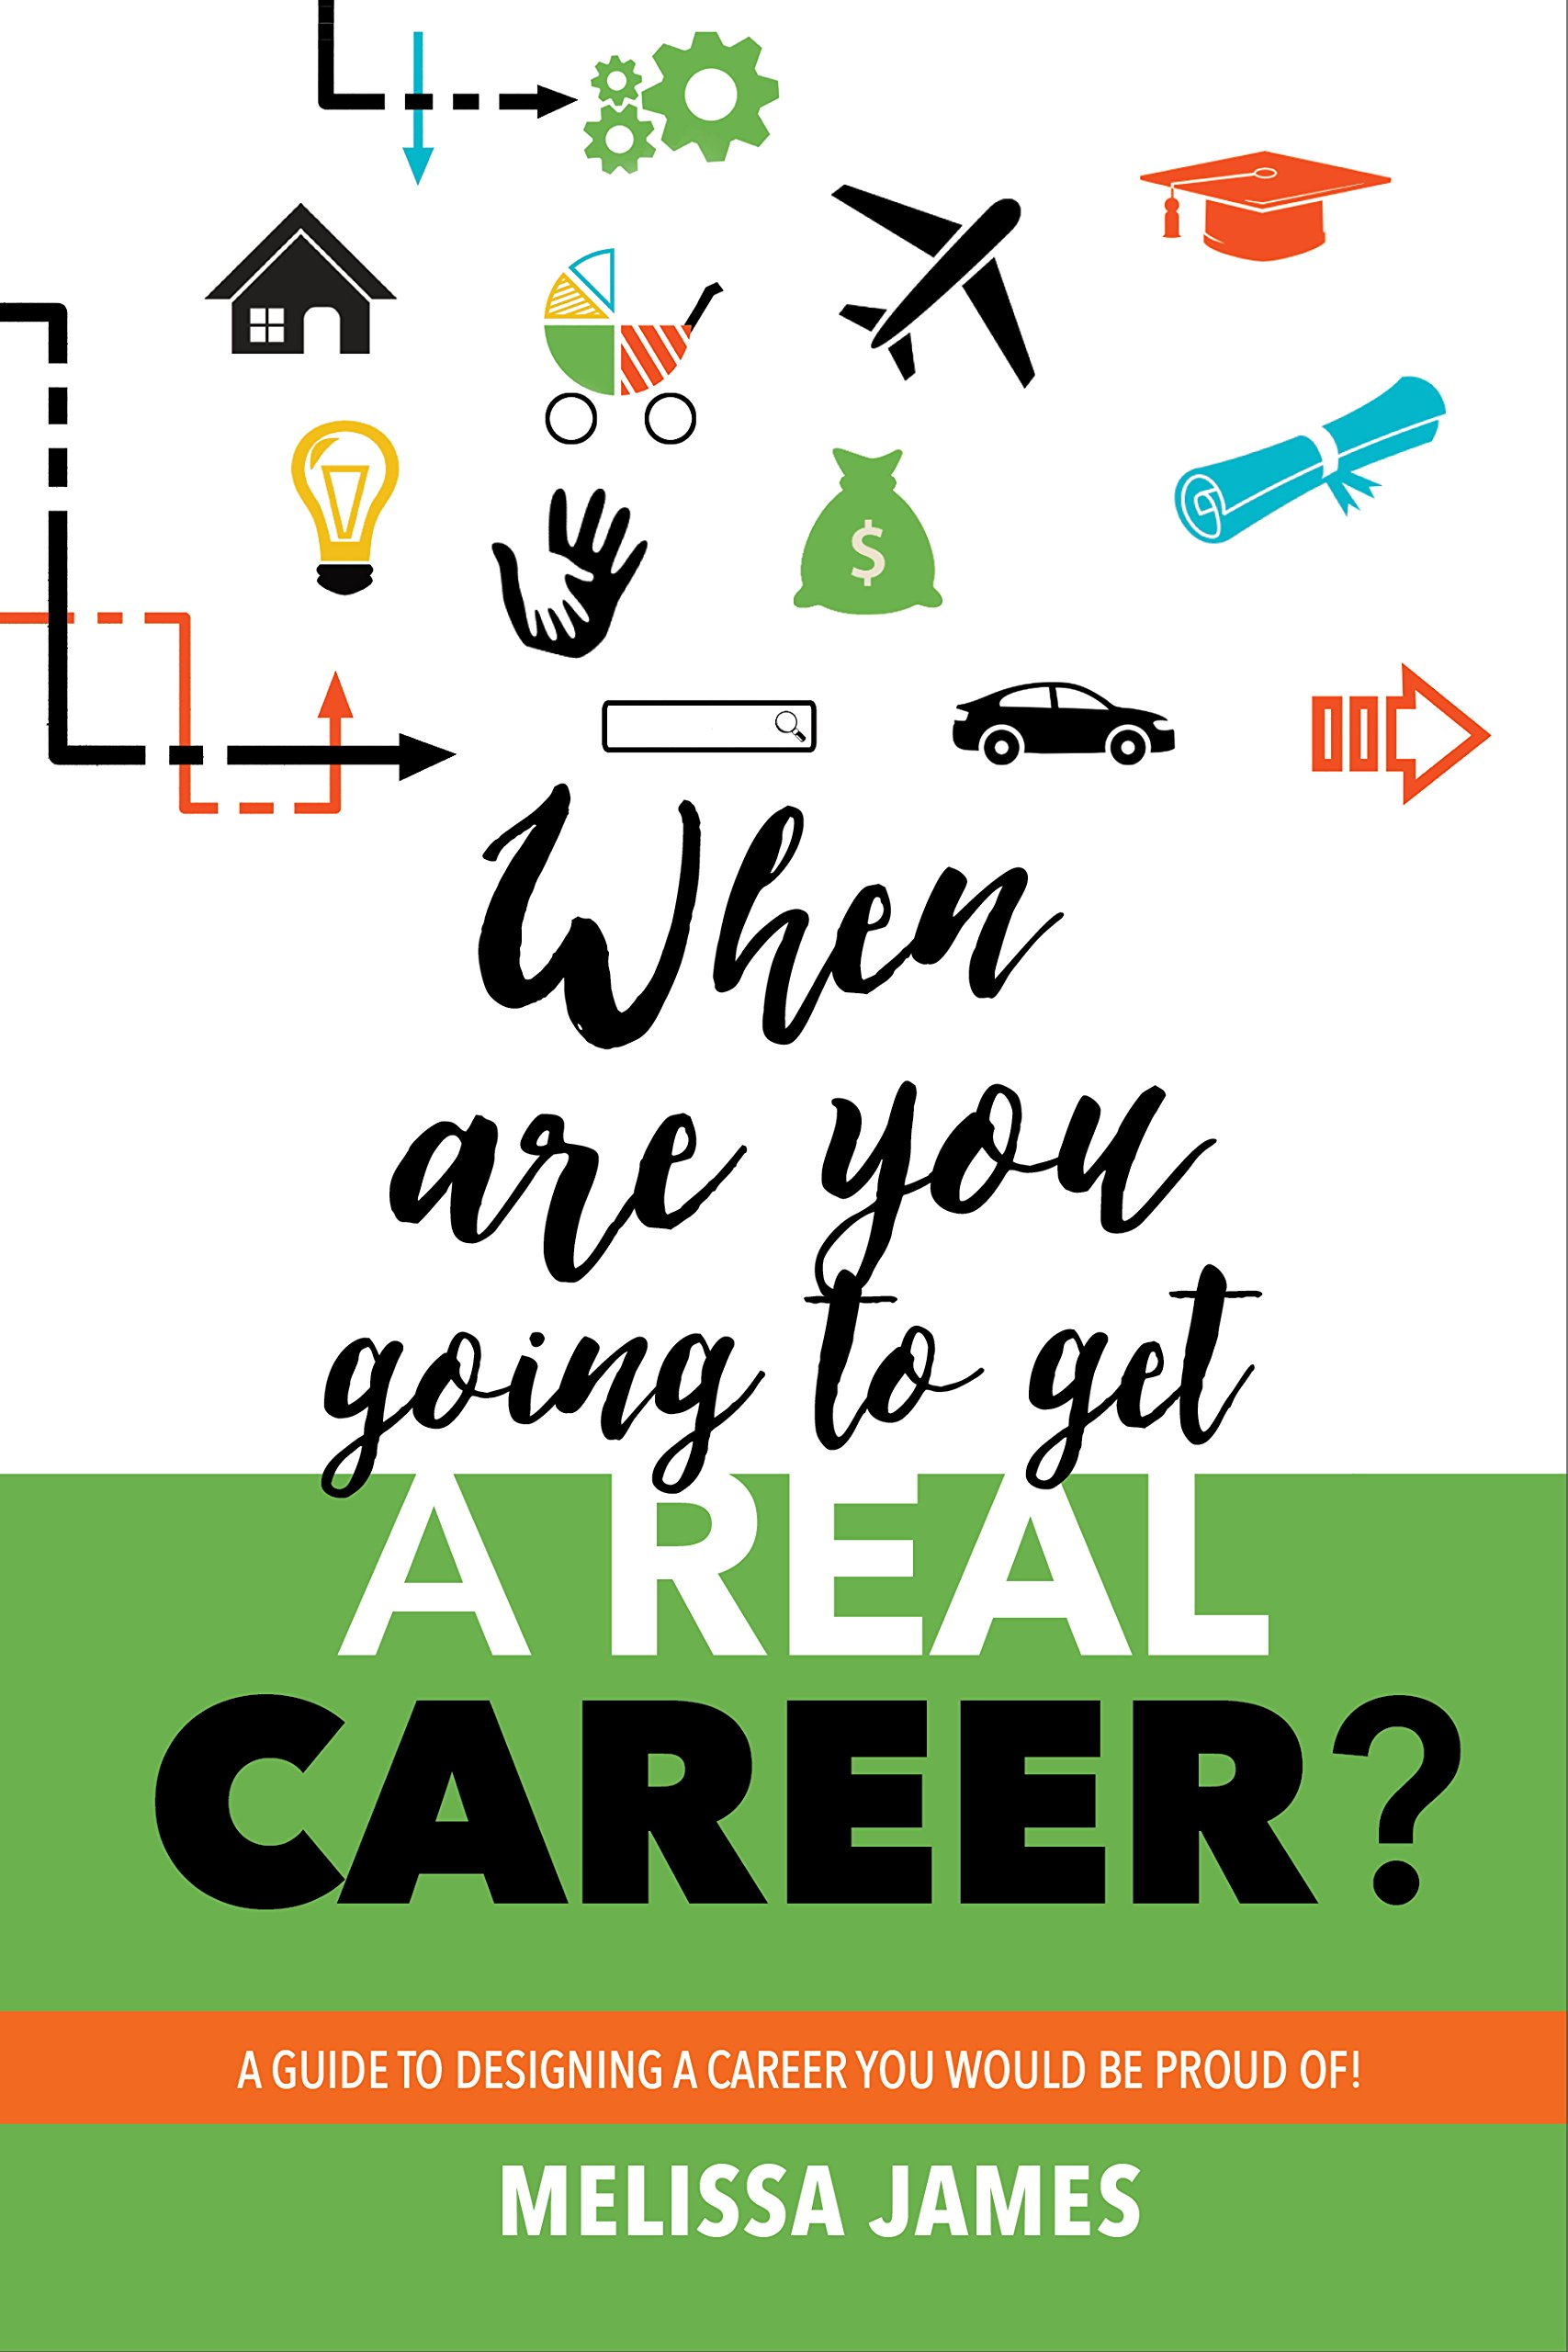 When Are You Going To Get A Real Career: A Guide to Designing a Career You Would Be Proud Of!